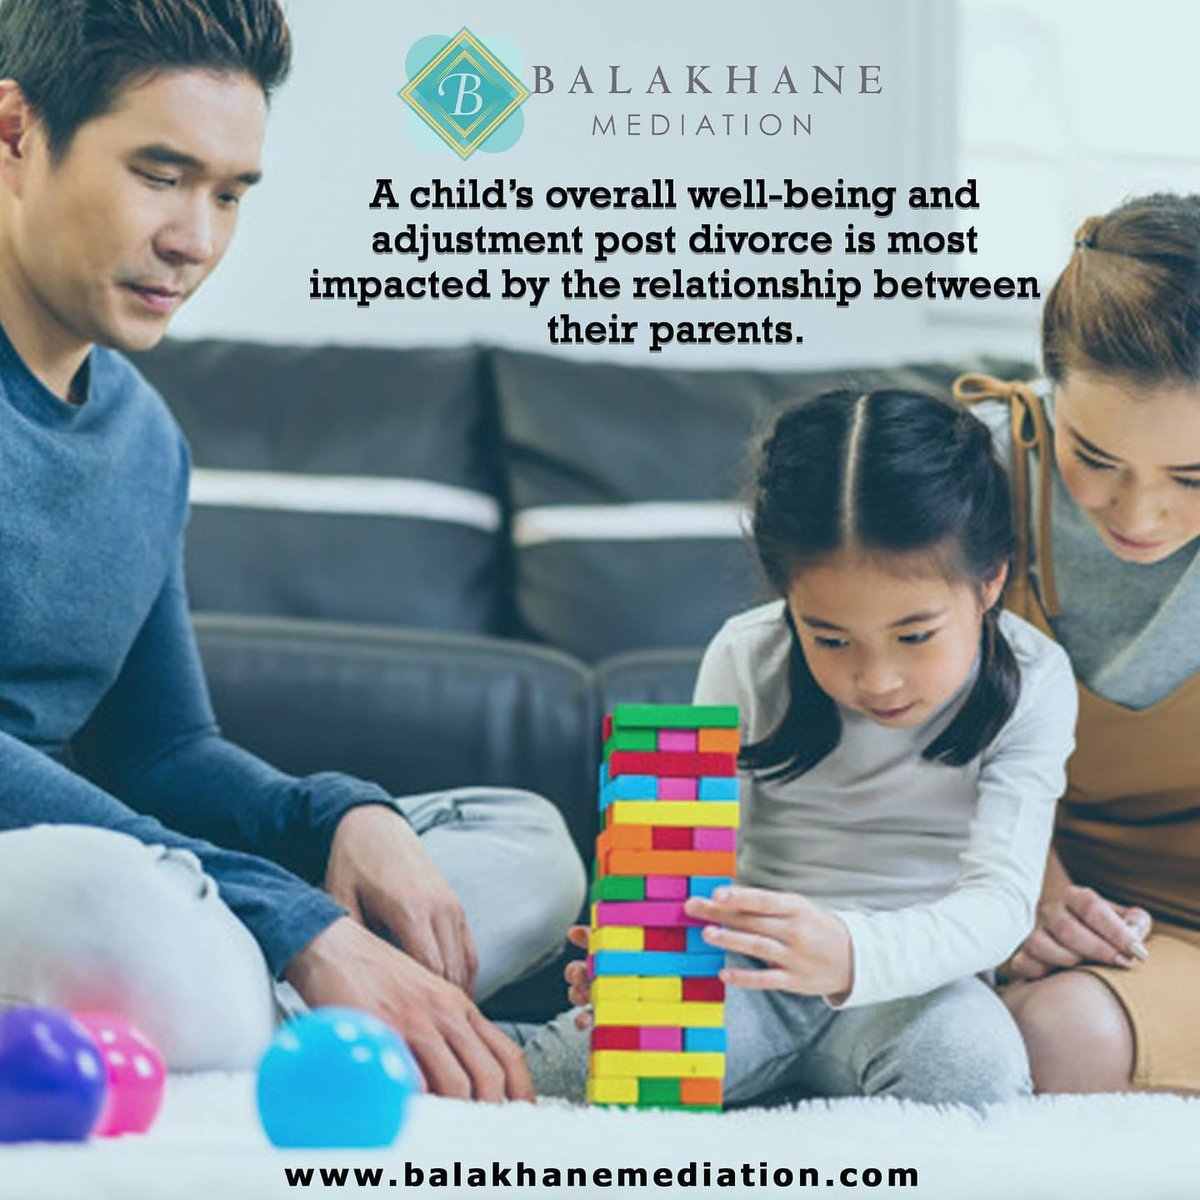 Children are privy to their parent's relationship, meaning that it is essential that parents reflect on how they interact with one another.  #coparenting #happykids #parents #children #healthydivorce #mediation #divorcemediation #online #onlinemediation #divorce https://t.co/wXJF9vrLRh